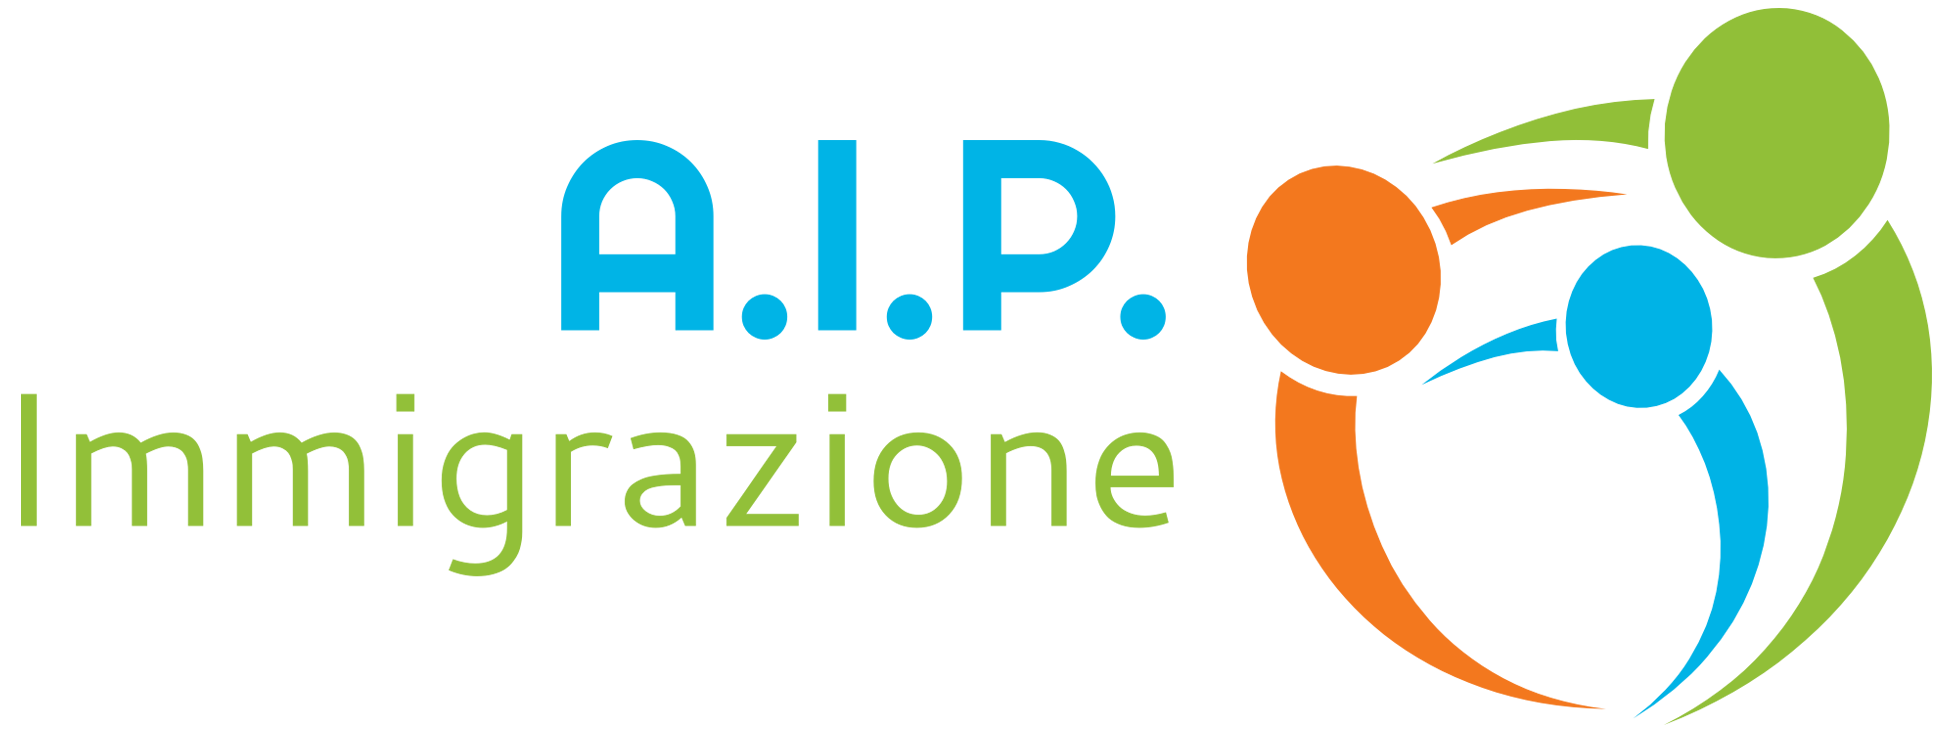 AIP Nazionale